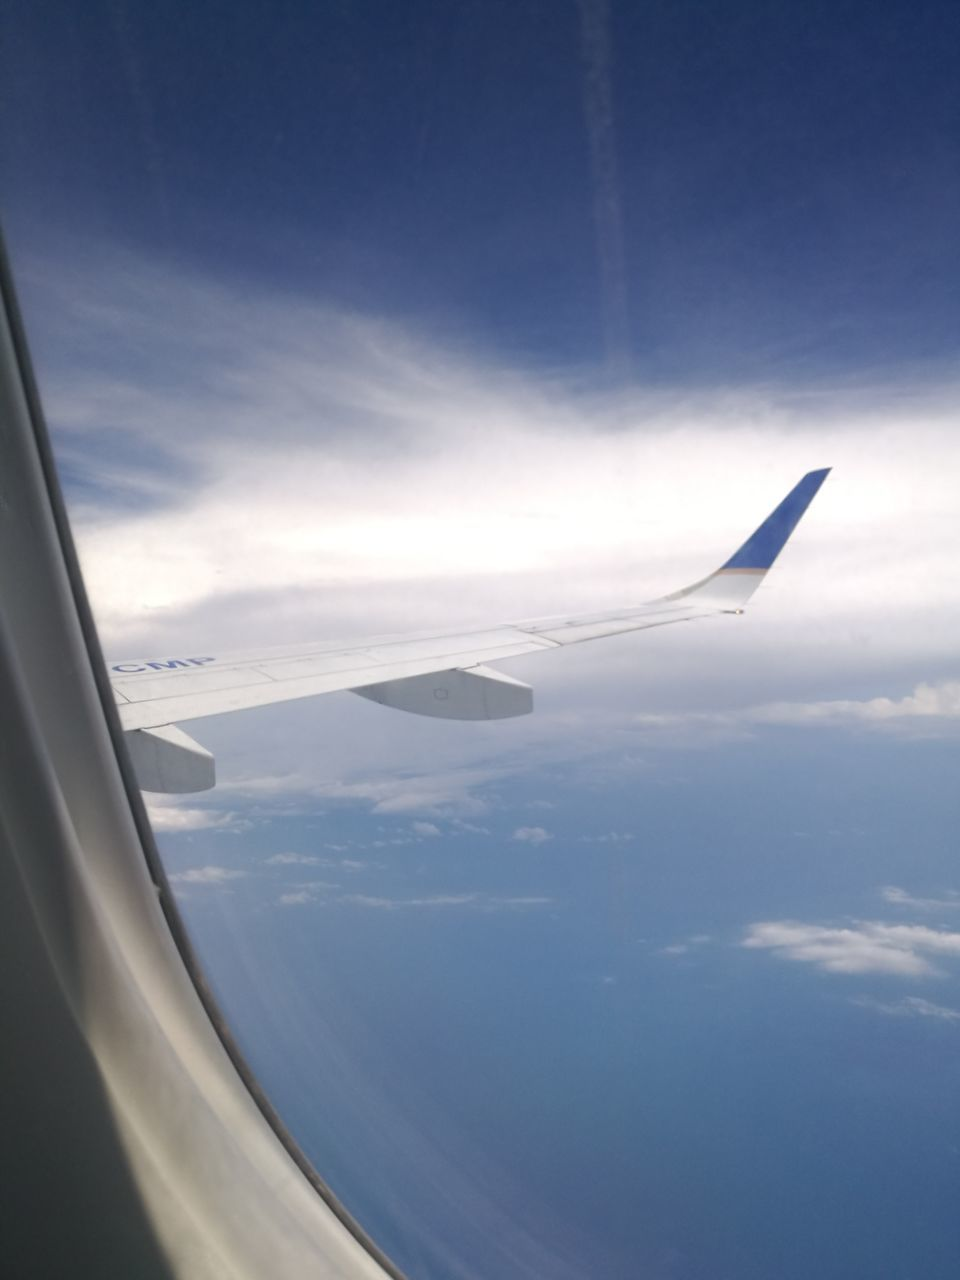 airplane, transportation, airplane wing, aerial view, sky, journey, air vehicle, cloud - sky, nature, mode of transport, no people, travel, flying, scenics, day, beauty in nature, mid-air, aircraft wing, blue, tranquility, outdoors, sea, horizon over water, close-up